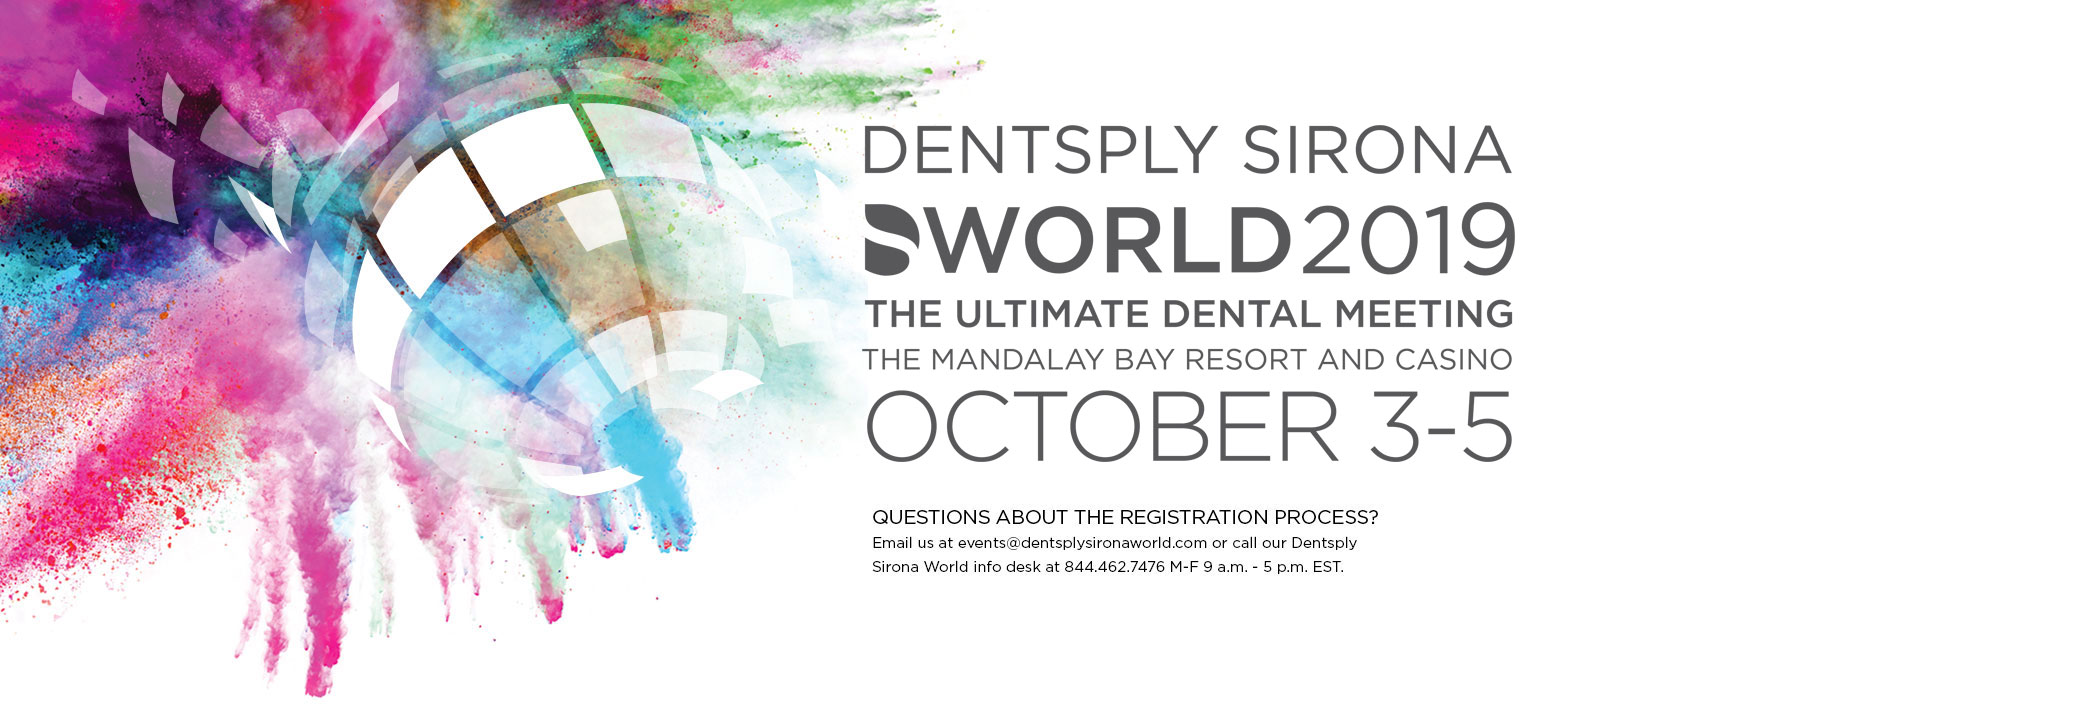 Dentsply Sirona World 2019